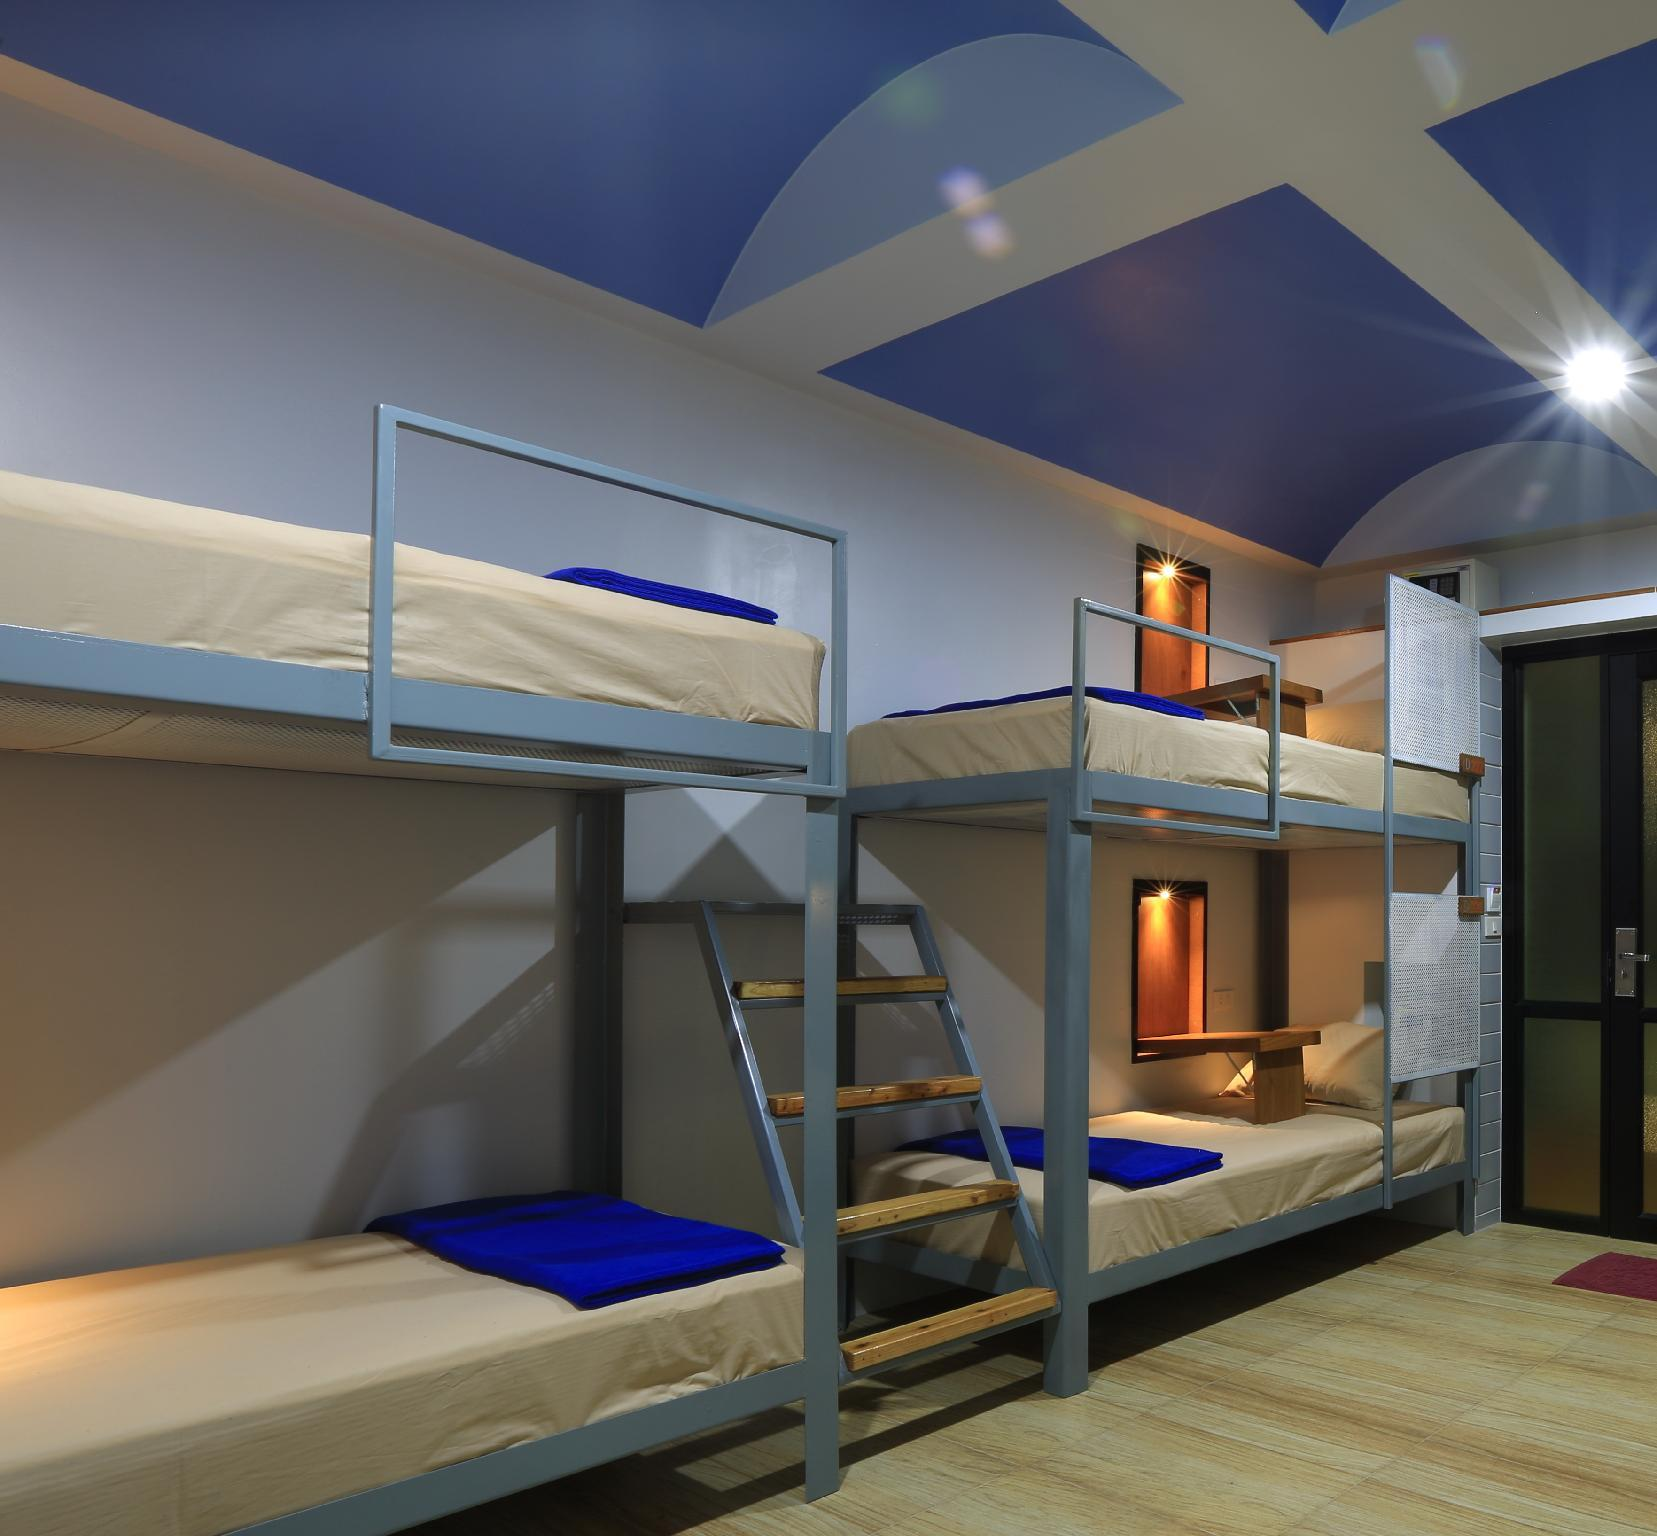 1 Person in 8-Bed Deluxe Dormitory - Mixed